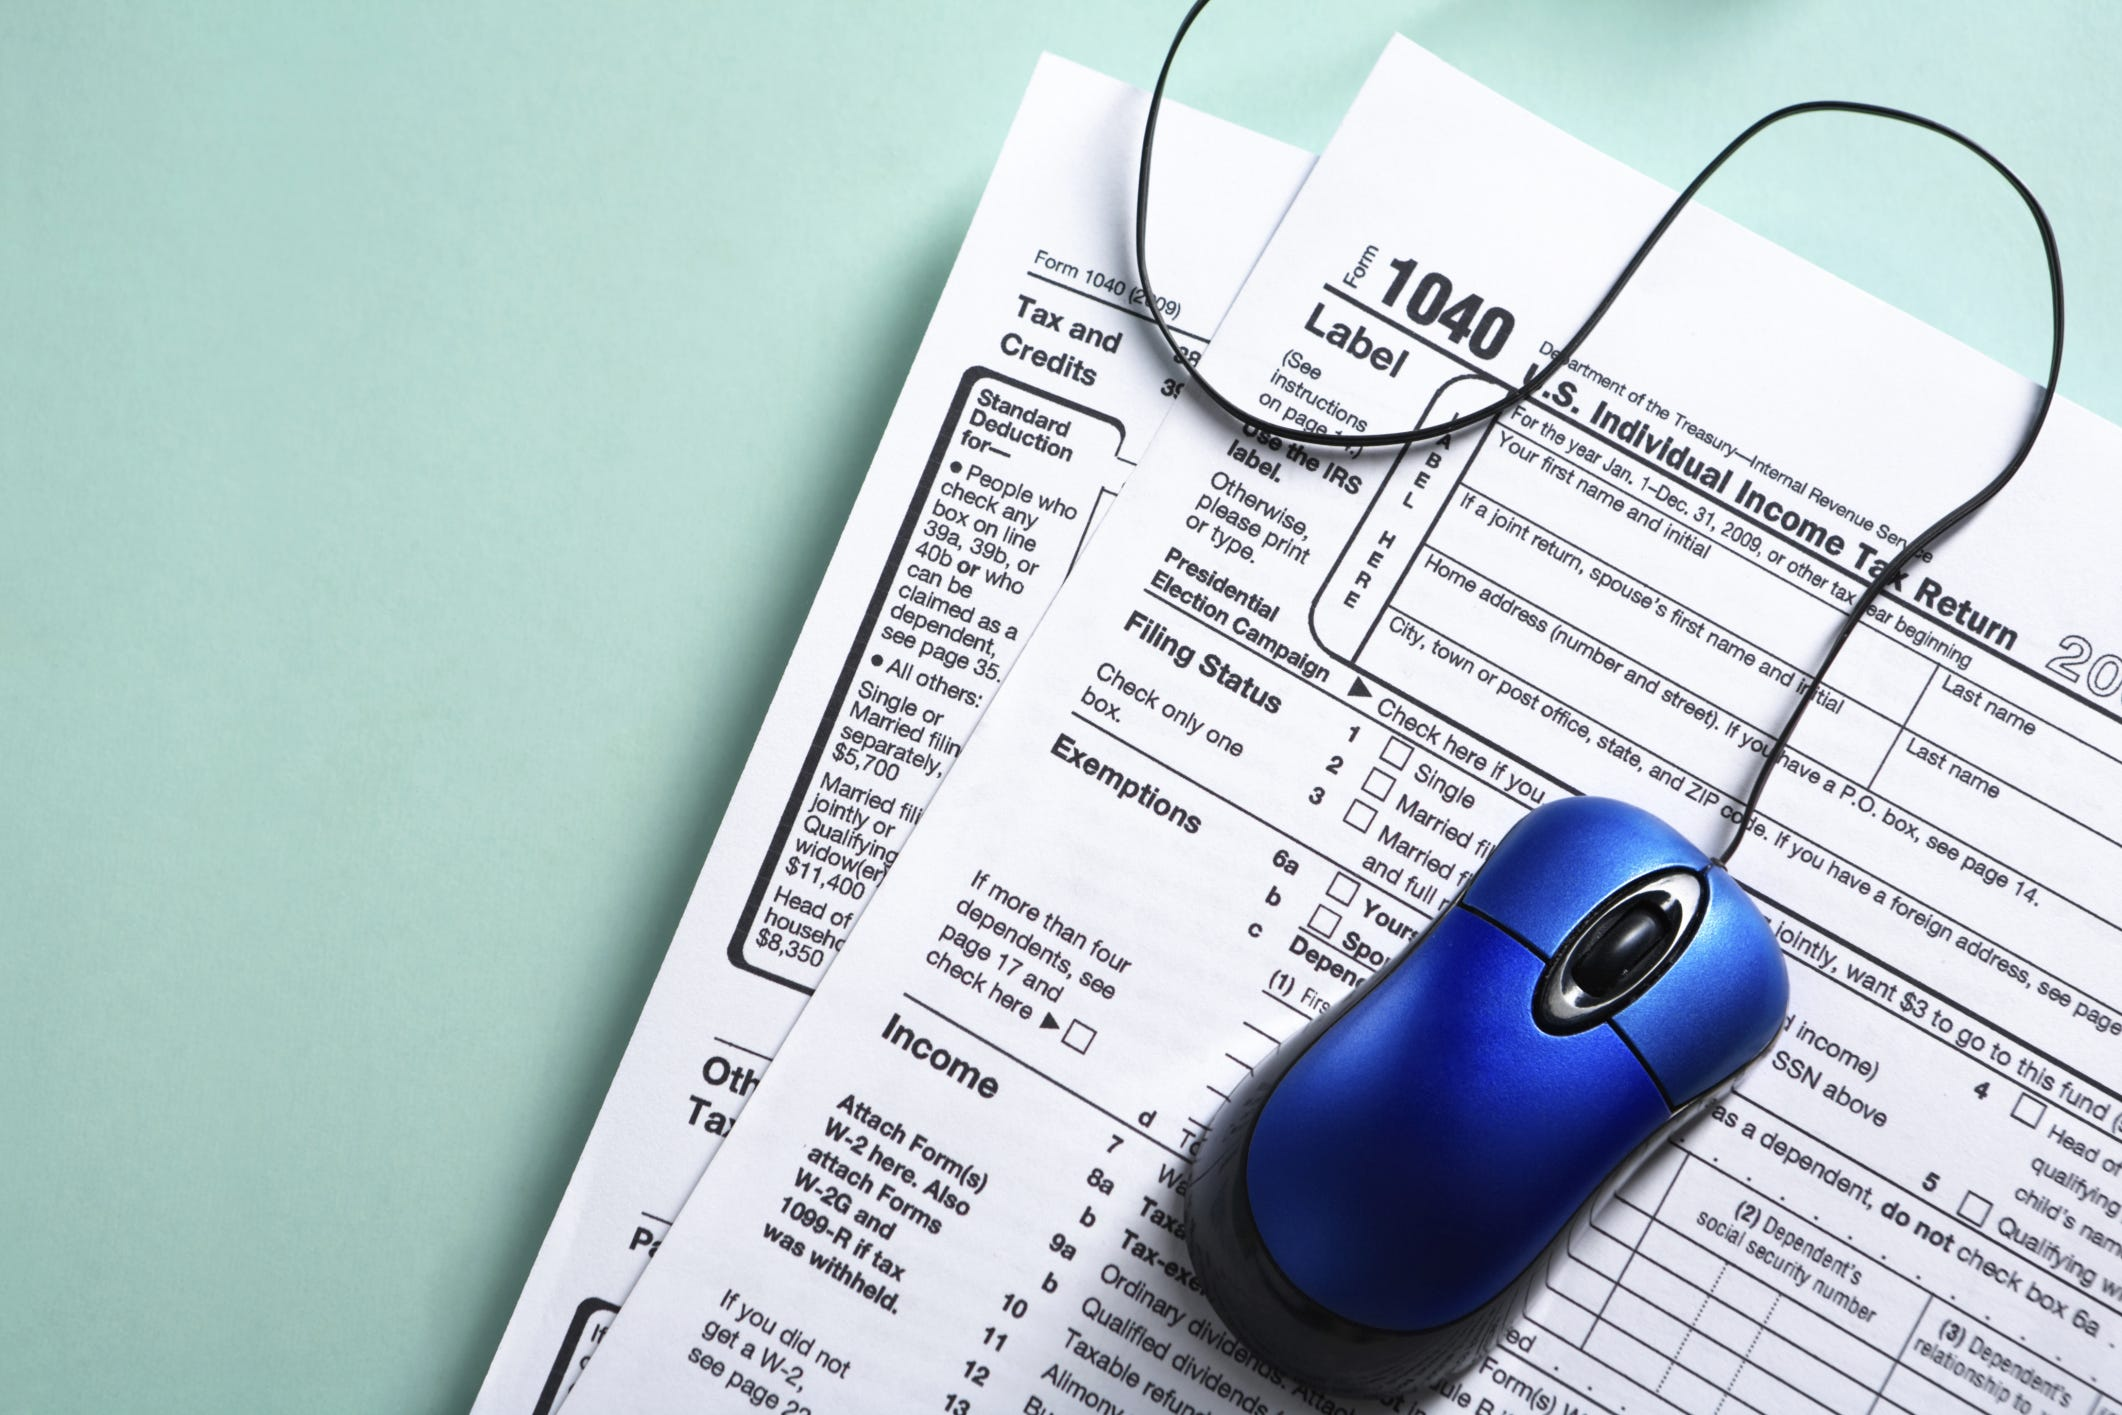 IRS needs to do more to fight income tax identity theft